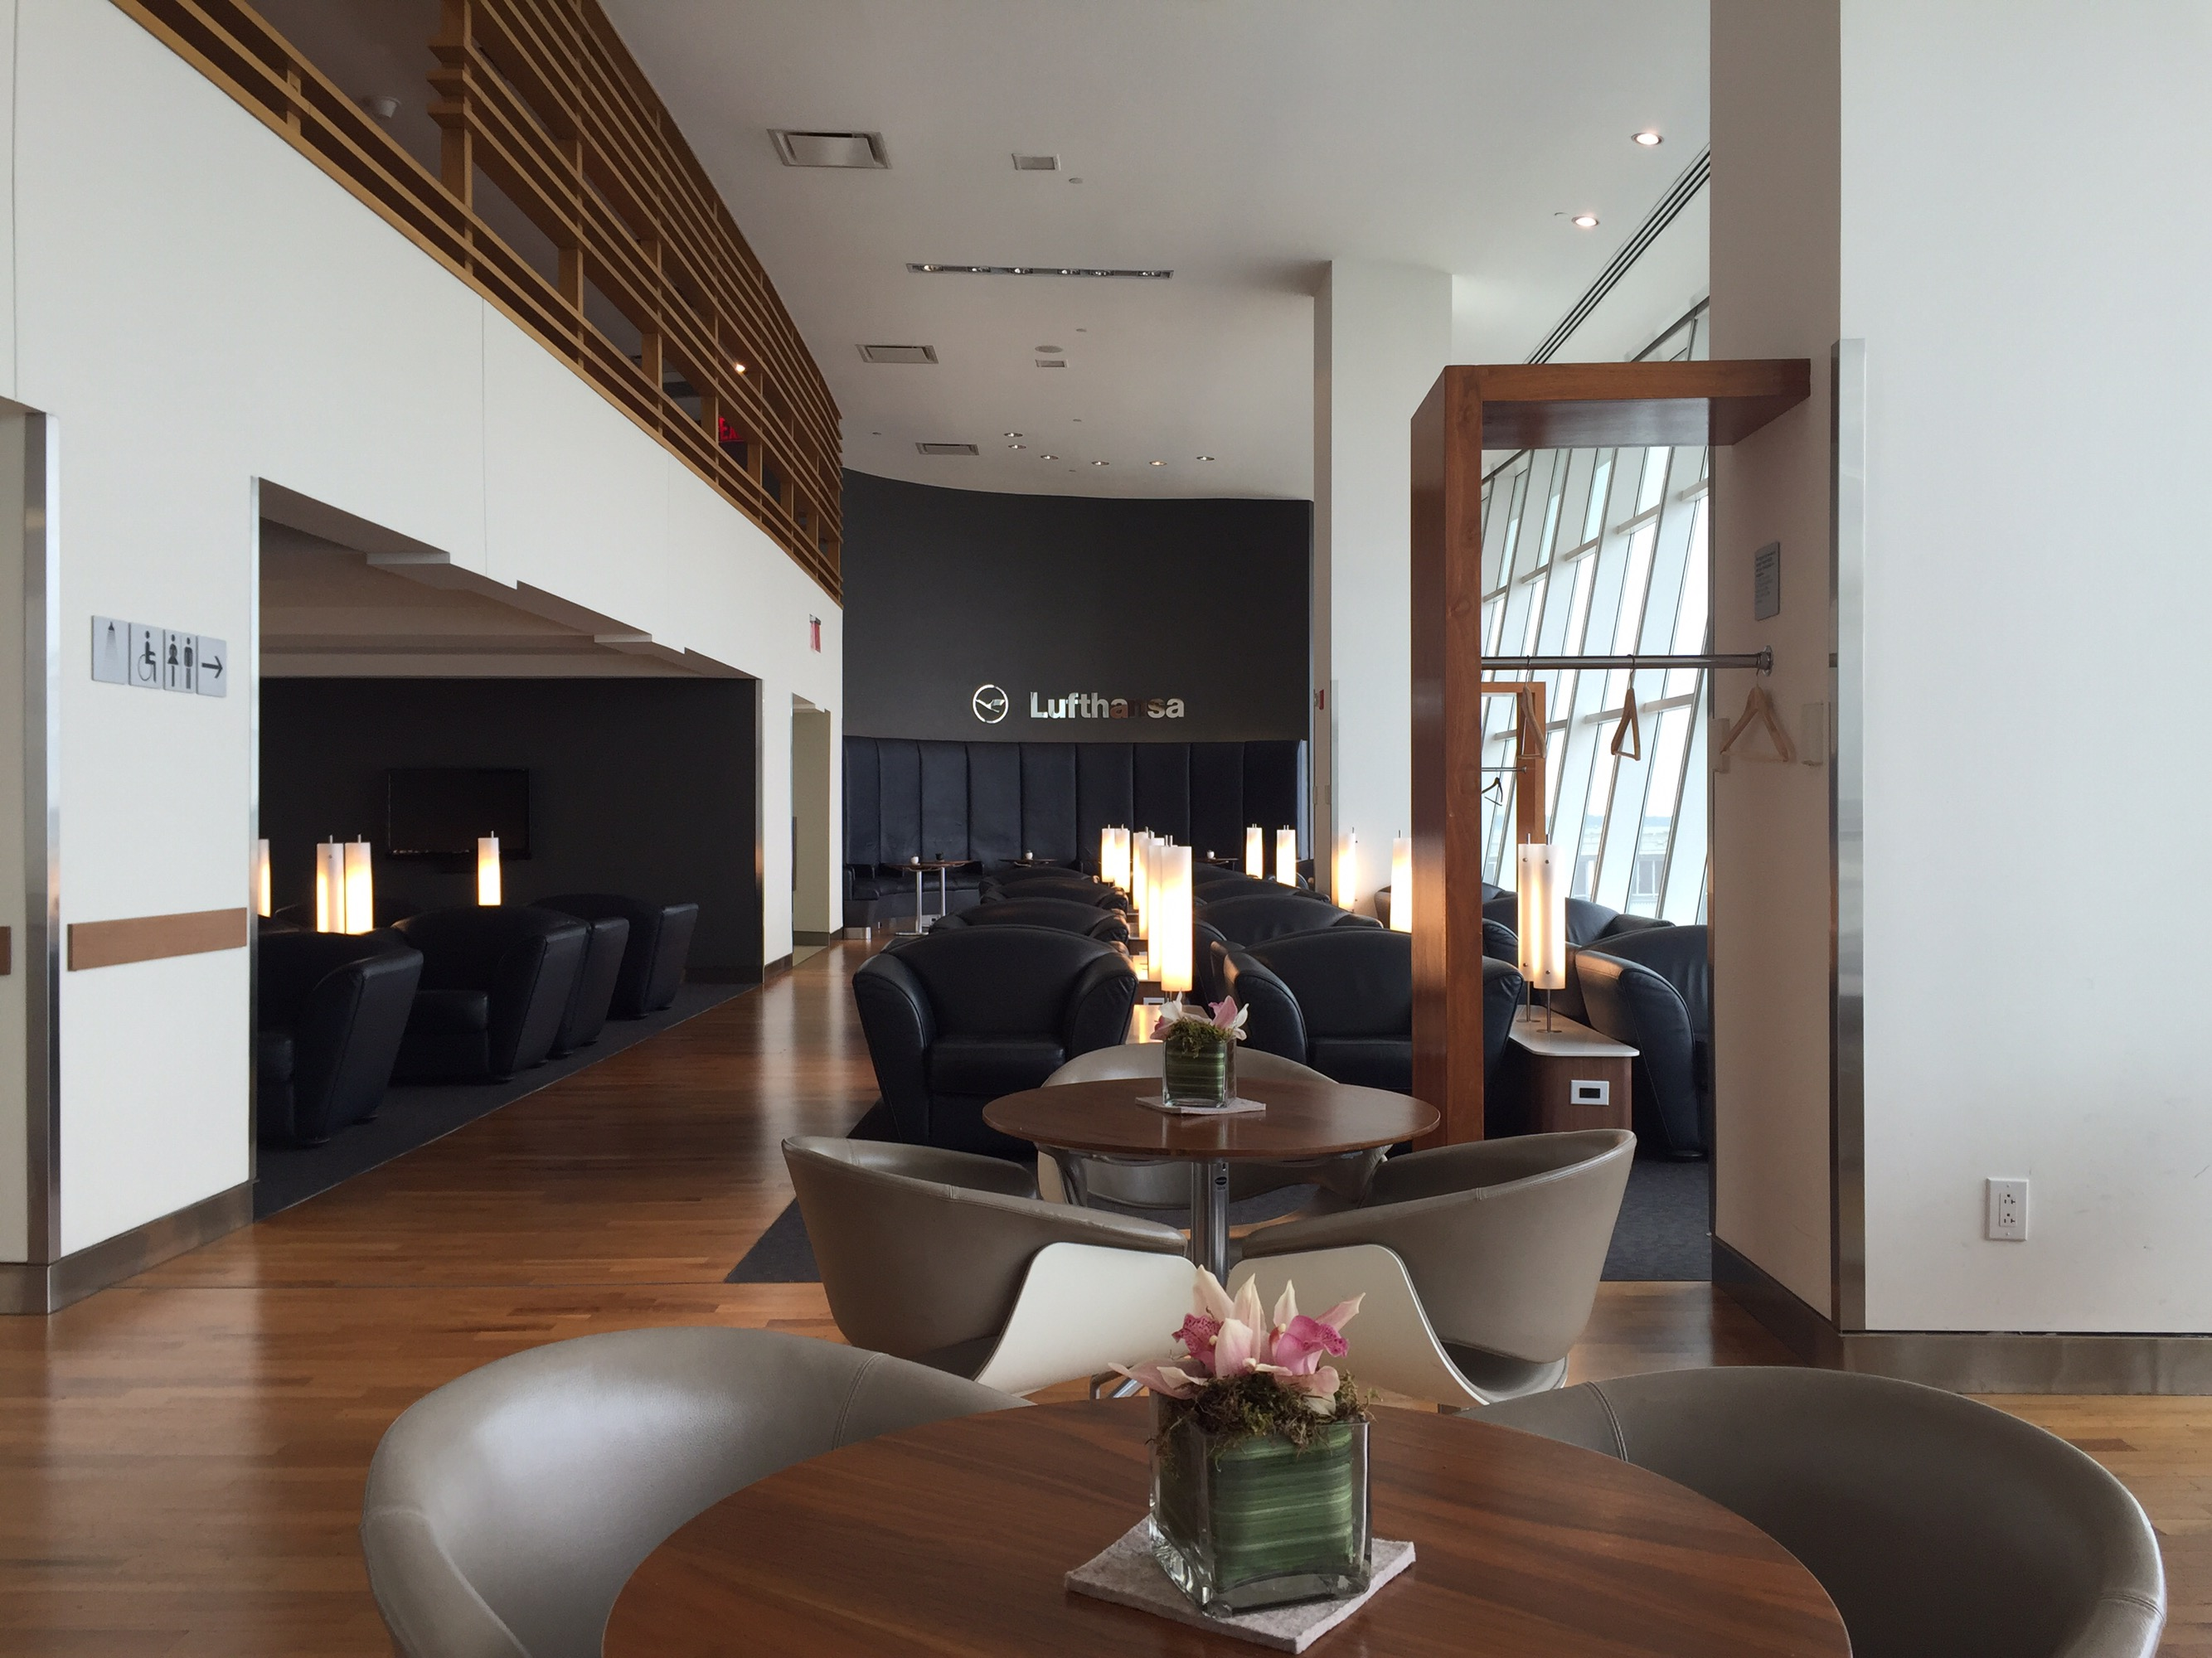 Lufthansa's Business Lounges at DTW, IAD, and JFK-post-image